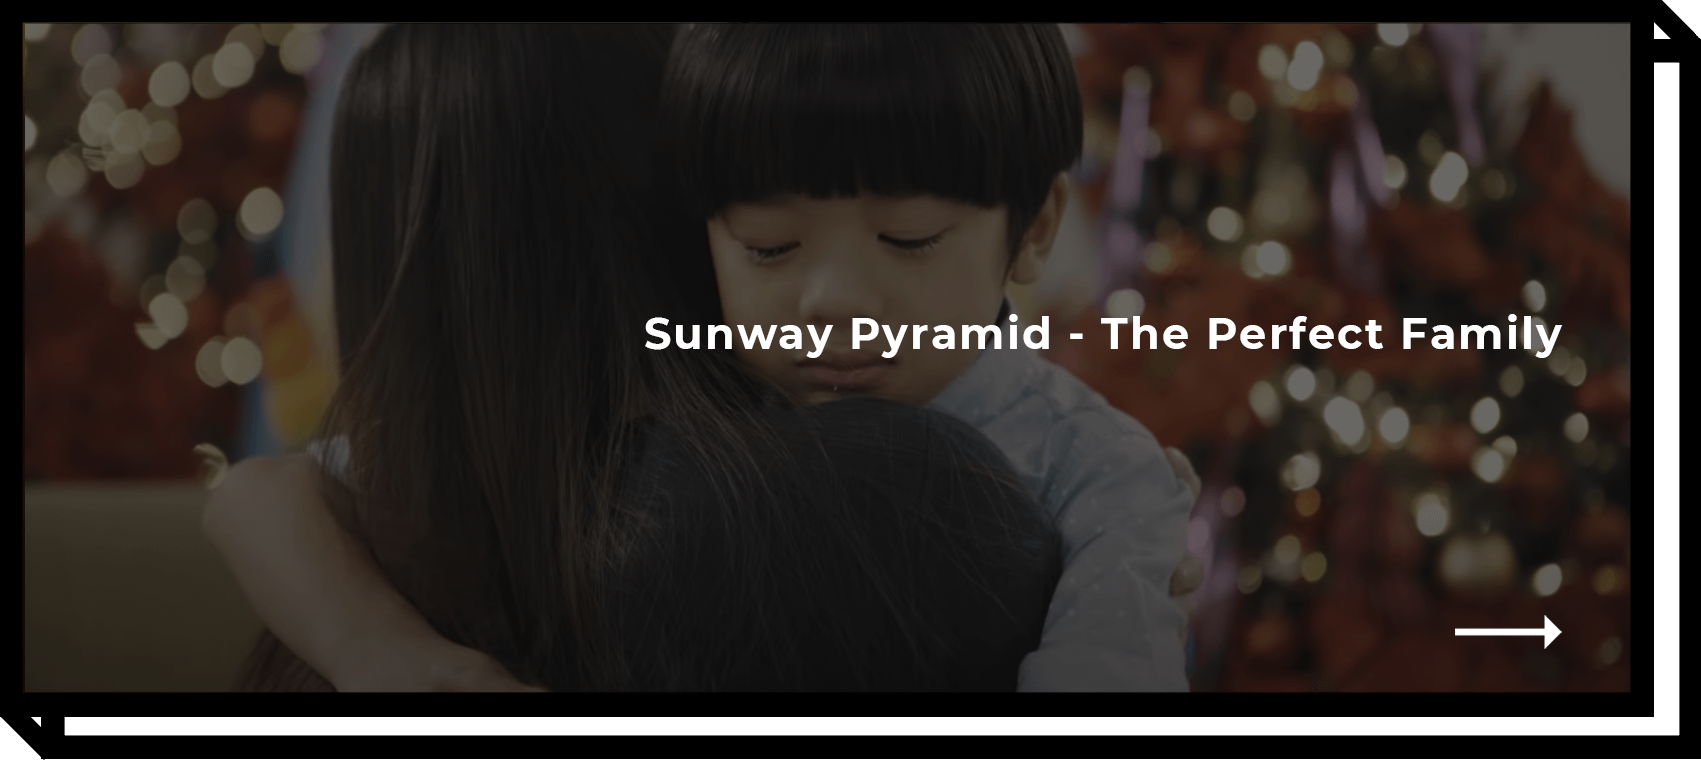 Sunway Pyramid - The Perfect Family